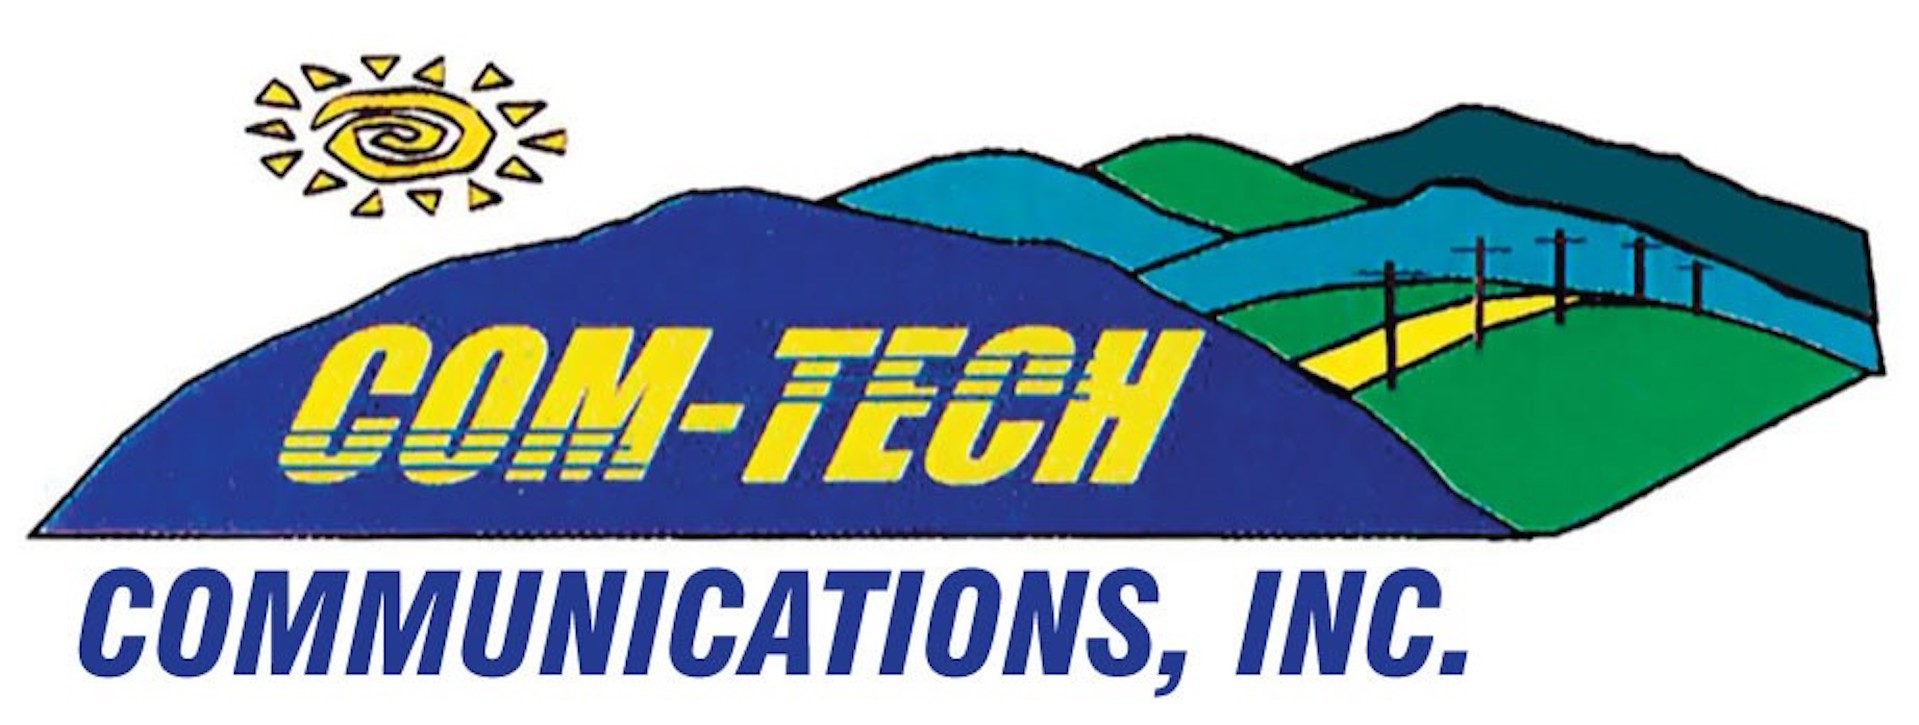 COMTECH COMMUNICATIONS, INC.